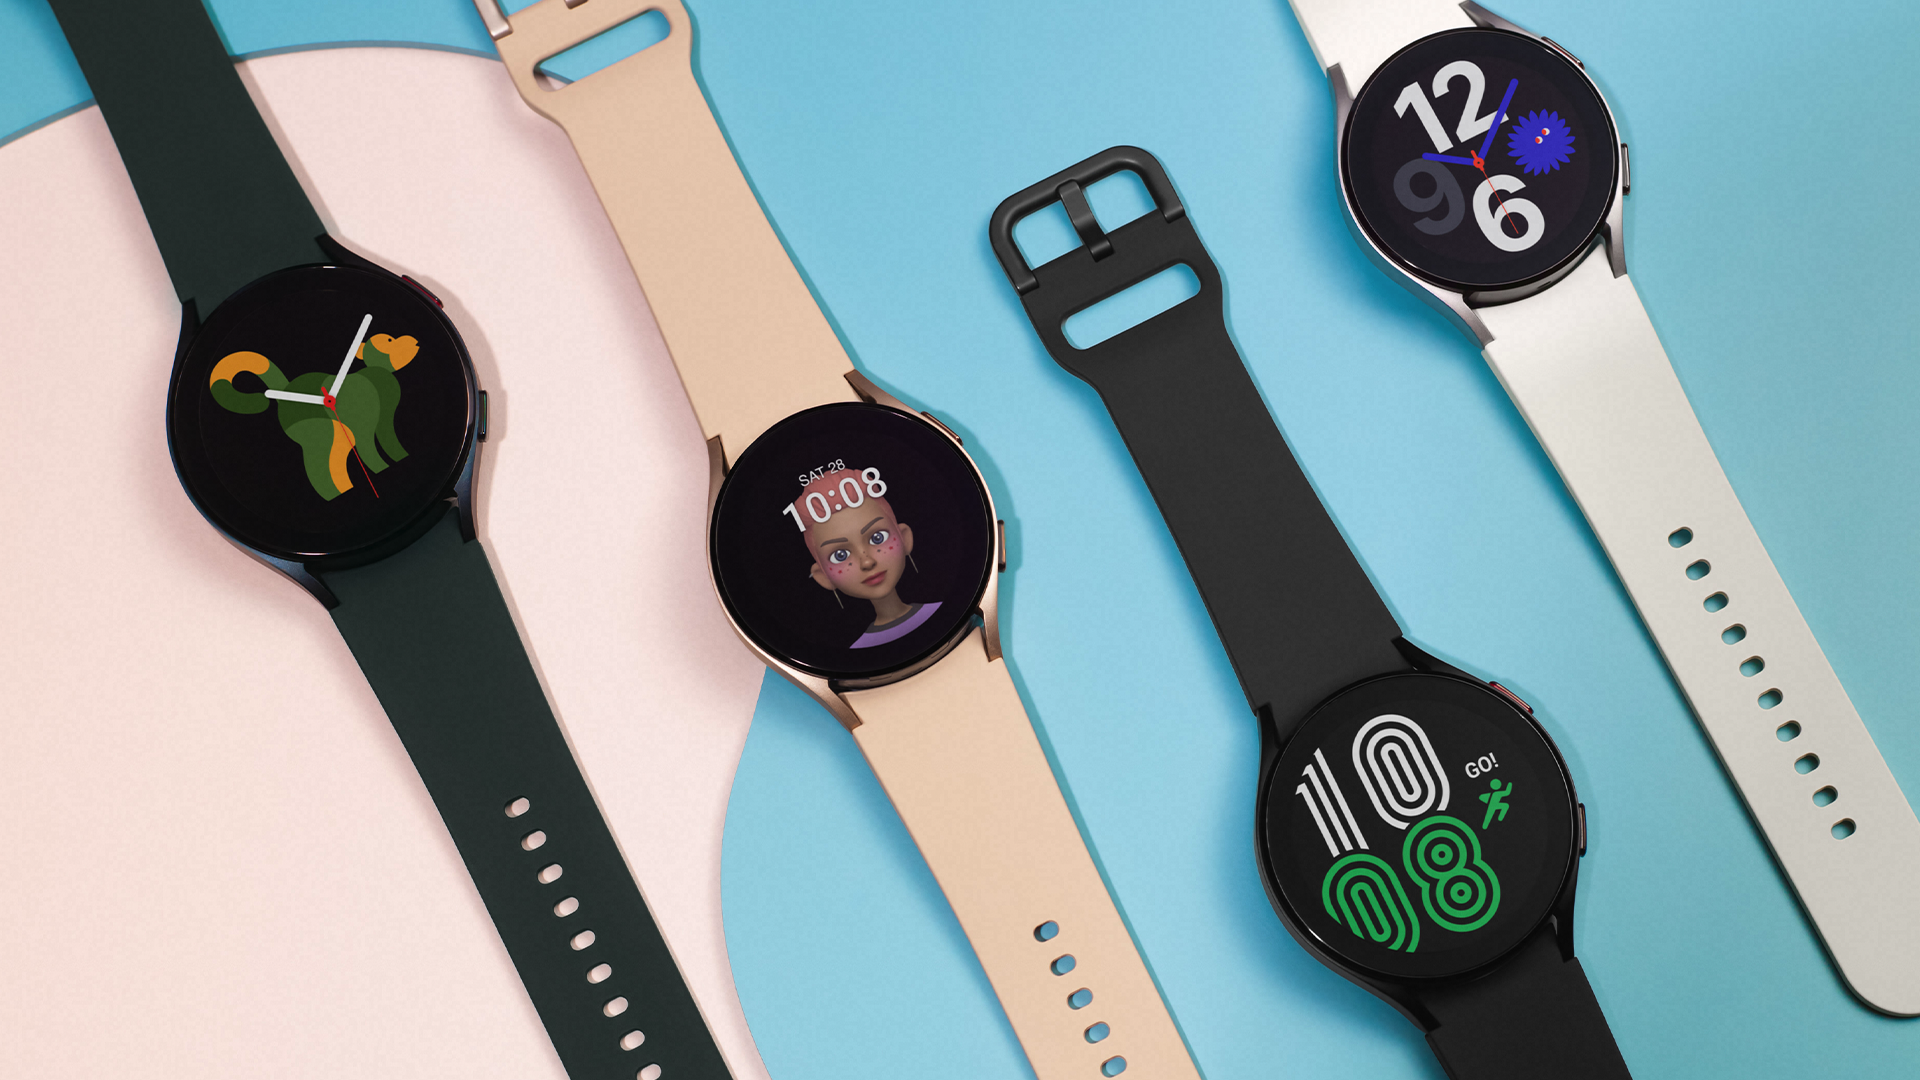 The Samsung Galaxy Watch 4 in black, white, green, and champagne.